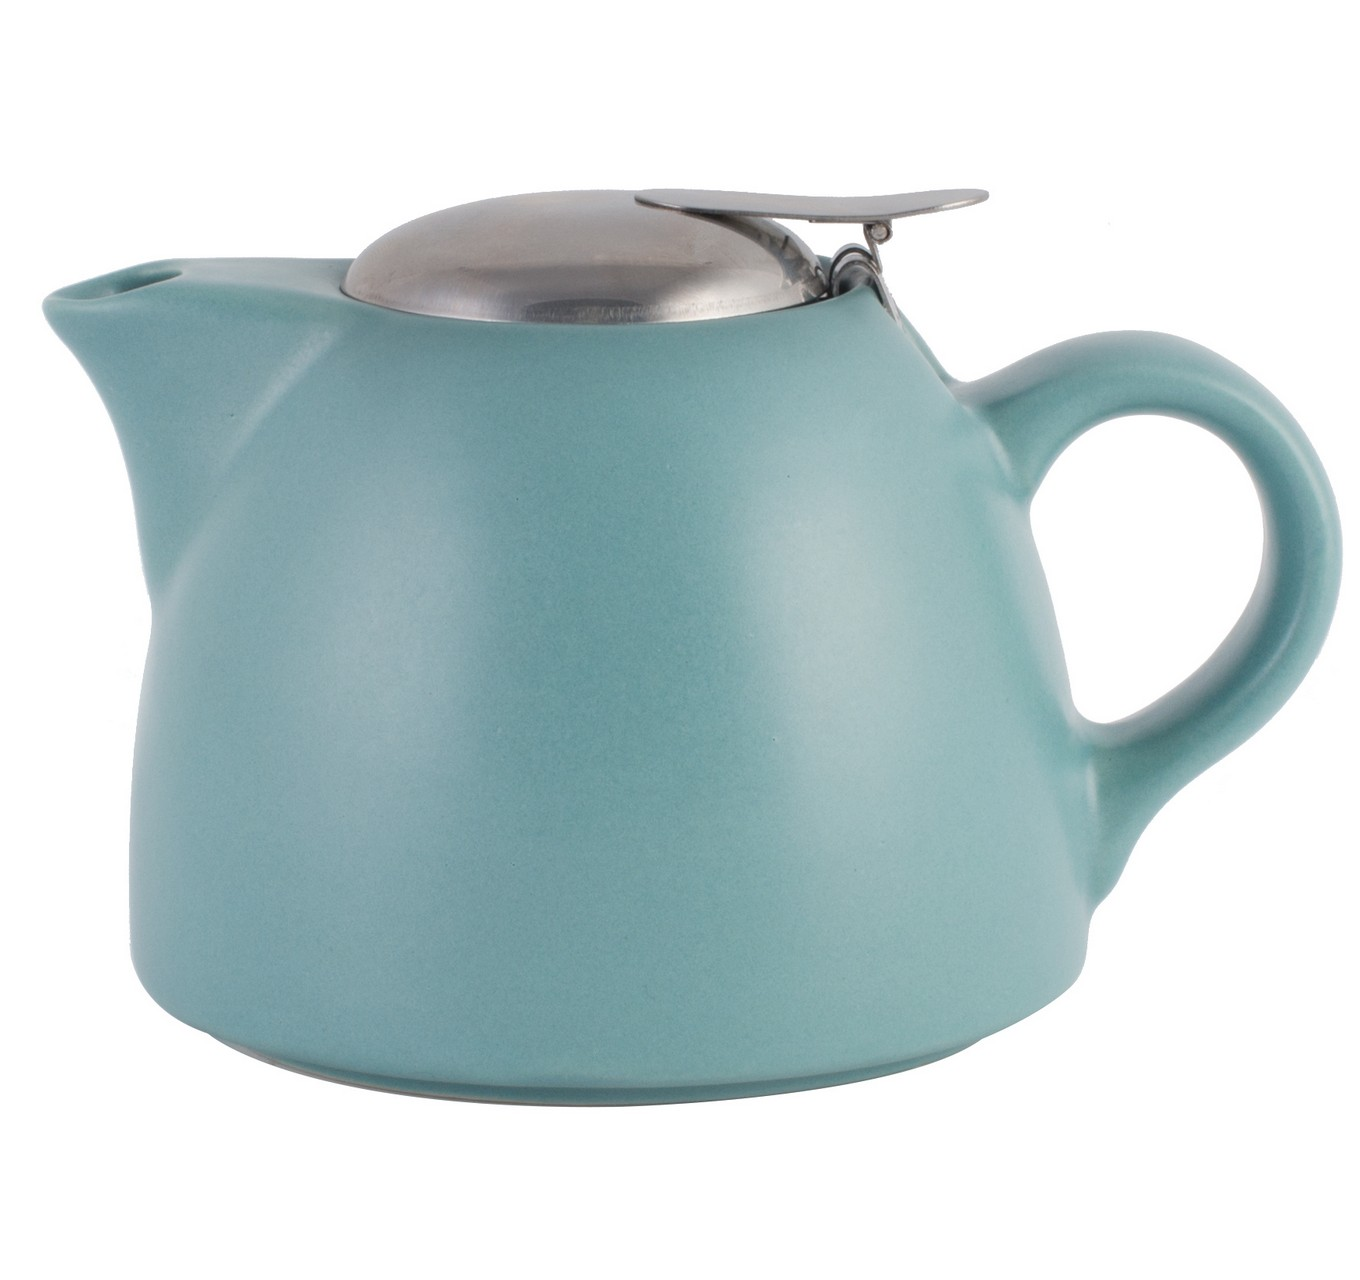 Barcelona Teapot Blue 450ml